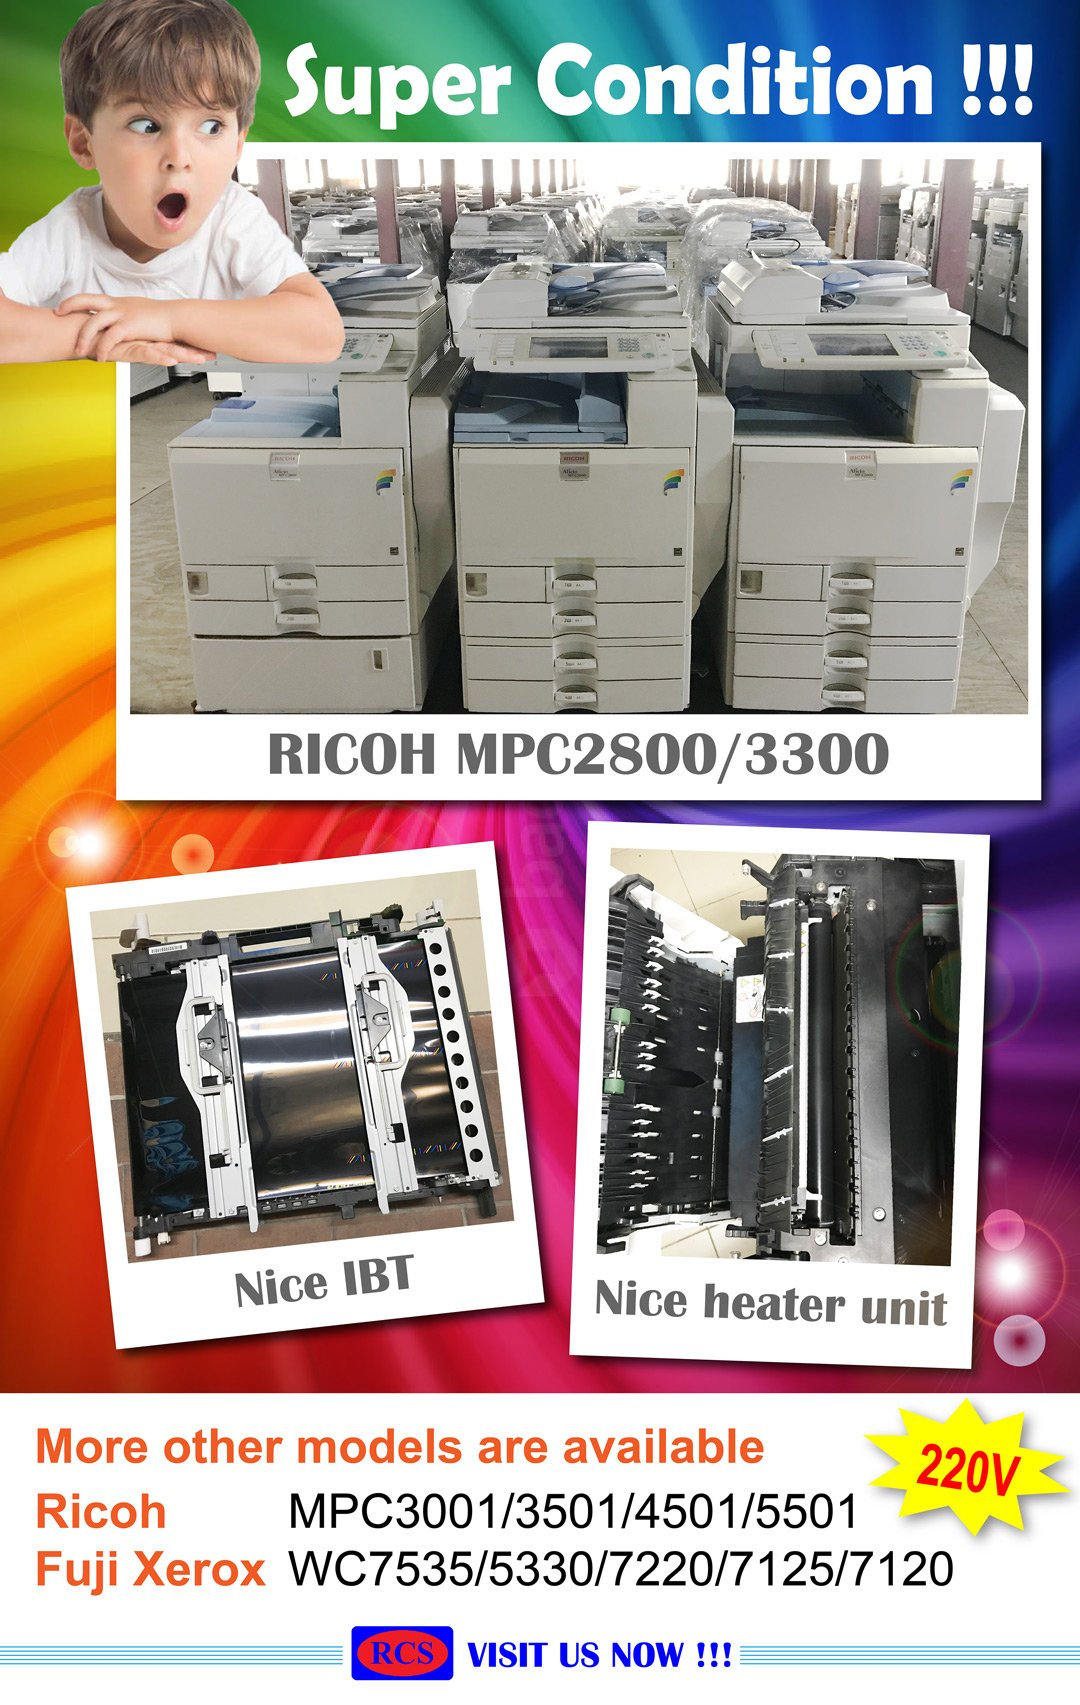 RICOH MPC2800/3300 NOW IN STOCK! FUJI XEROX/CANON/MINOLTA 220V RECONDITIONED COPIER WHOLESALE